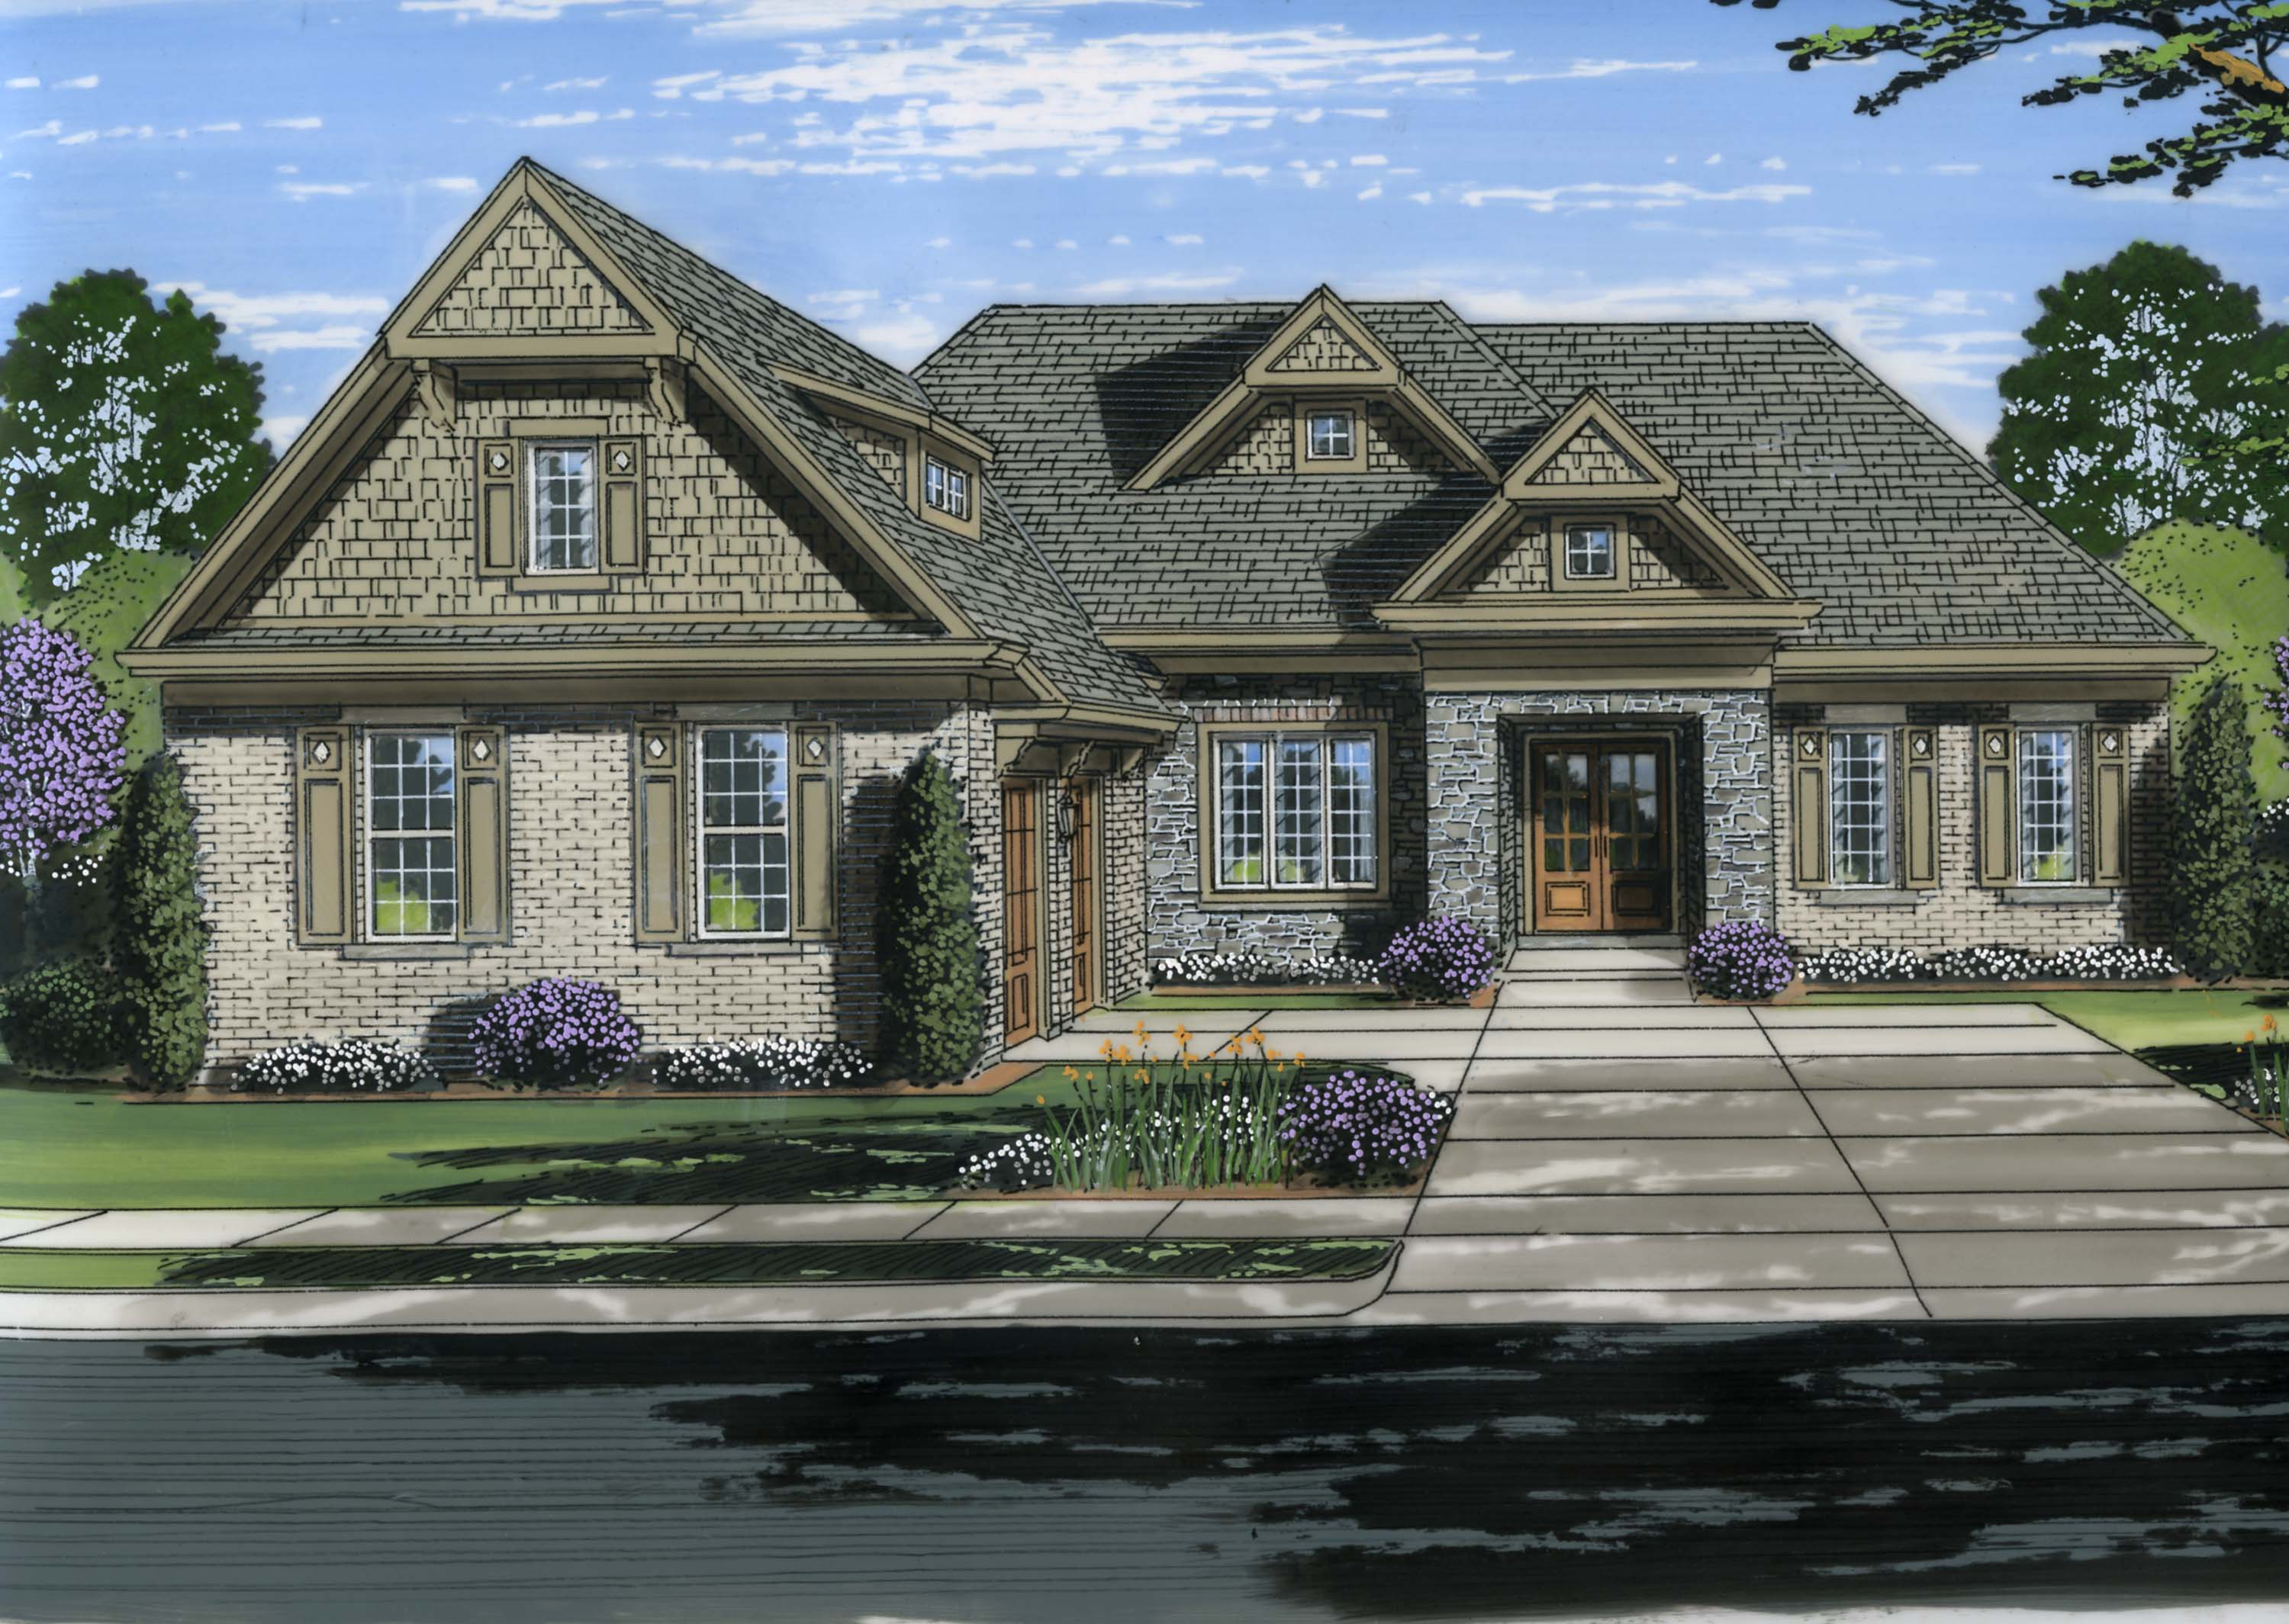 traditional floor plans traditional house plan 169 1115 3 bedrm 2393 sq ft home theplancollection 5479